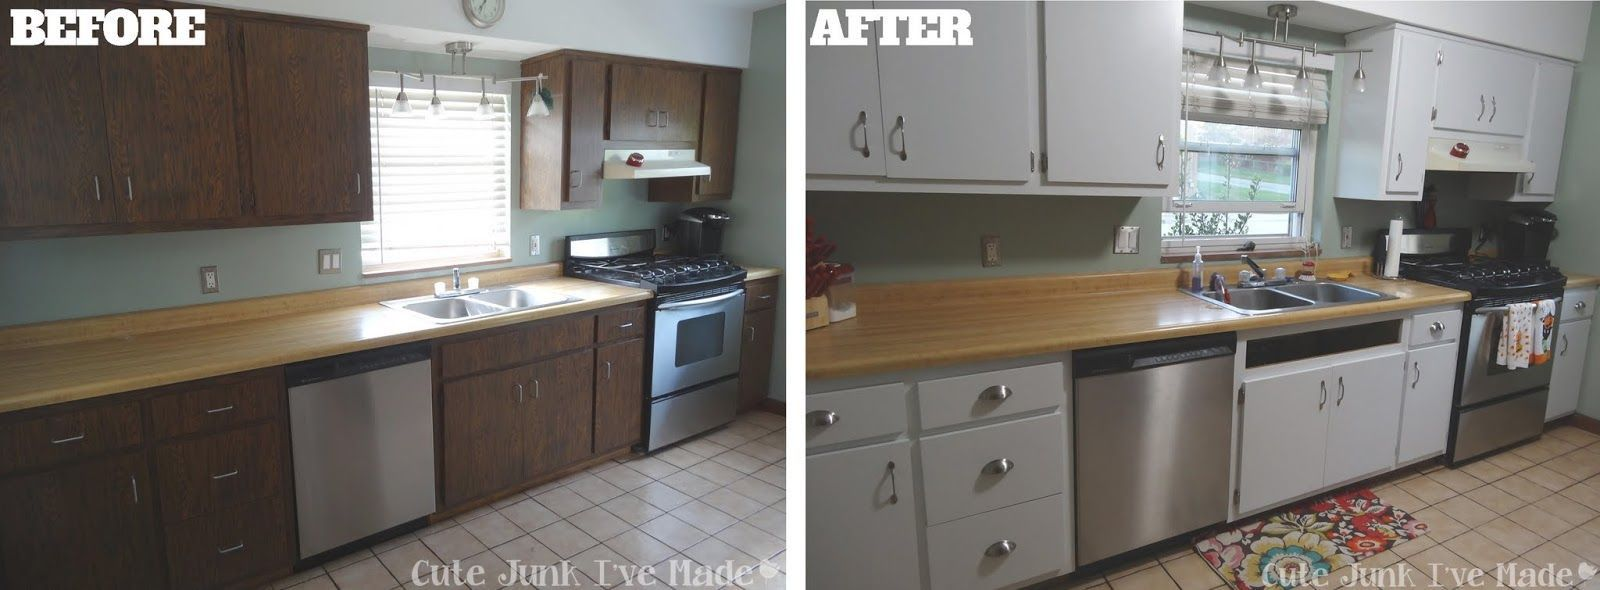 70 Can You Refinish Laminate Cabinets Kitchen Design And Layout Ideas Check More At Http Www Planetgreenspot Co Laminate Kitchen Cabinets Laminate Cabinets